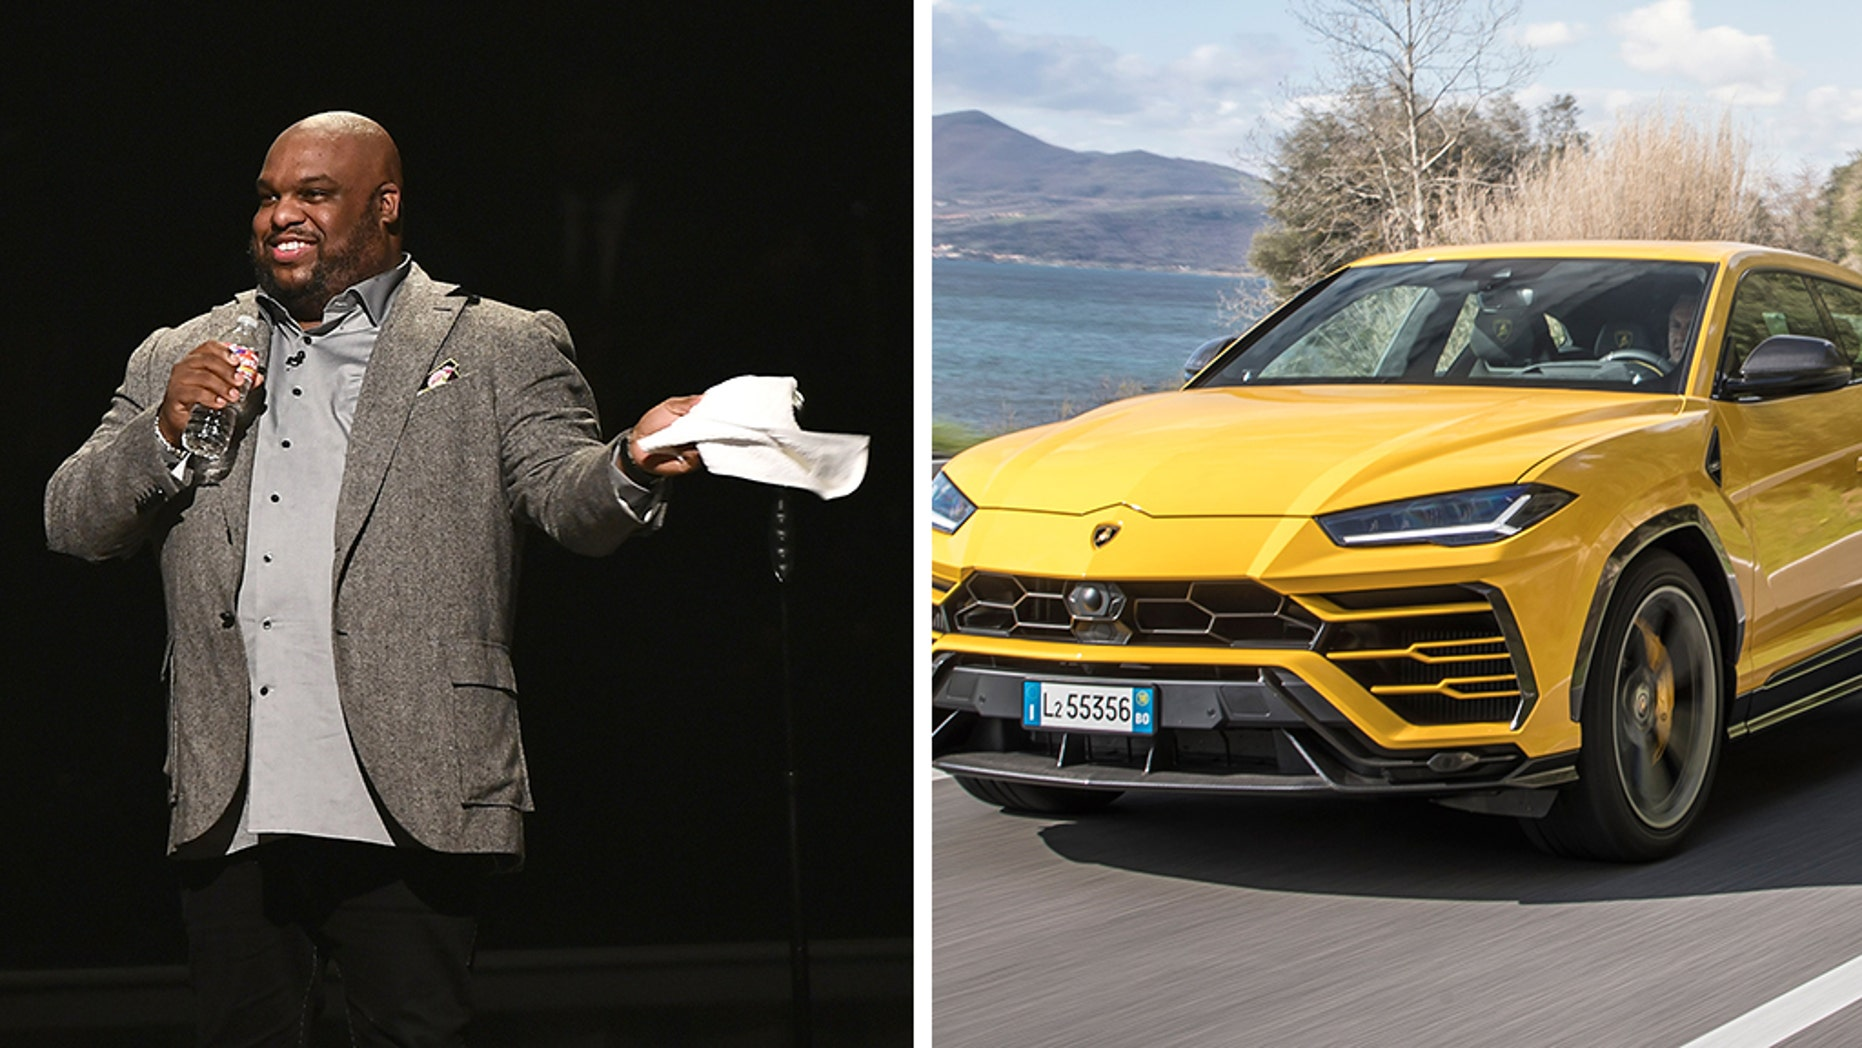 Pastor John Gray came under fire for purchasing a Lamborghini for his wife.